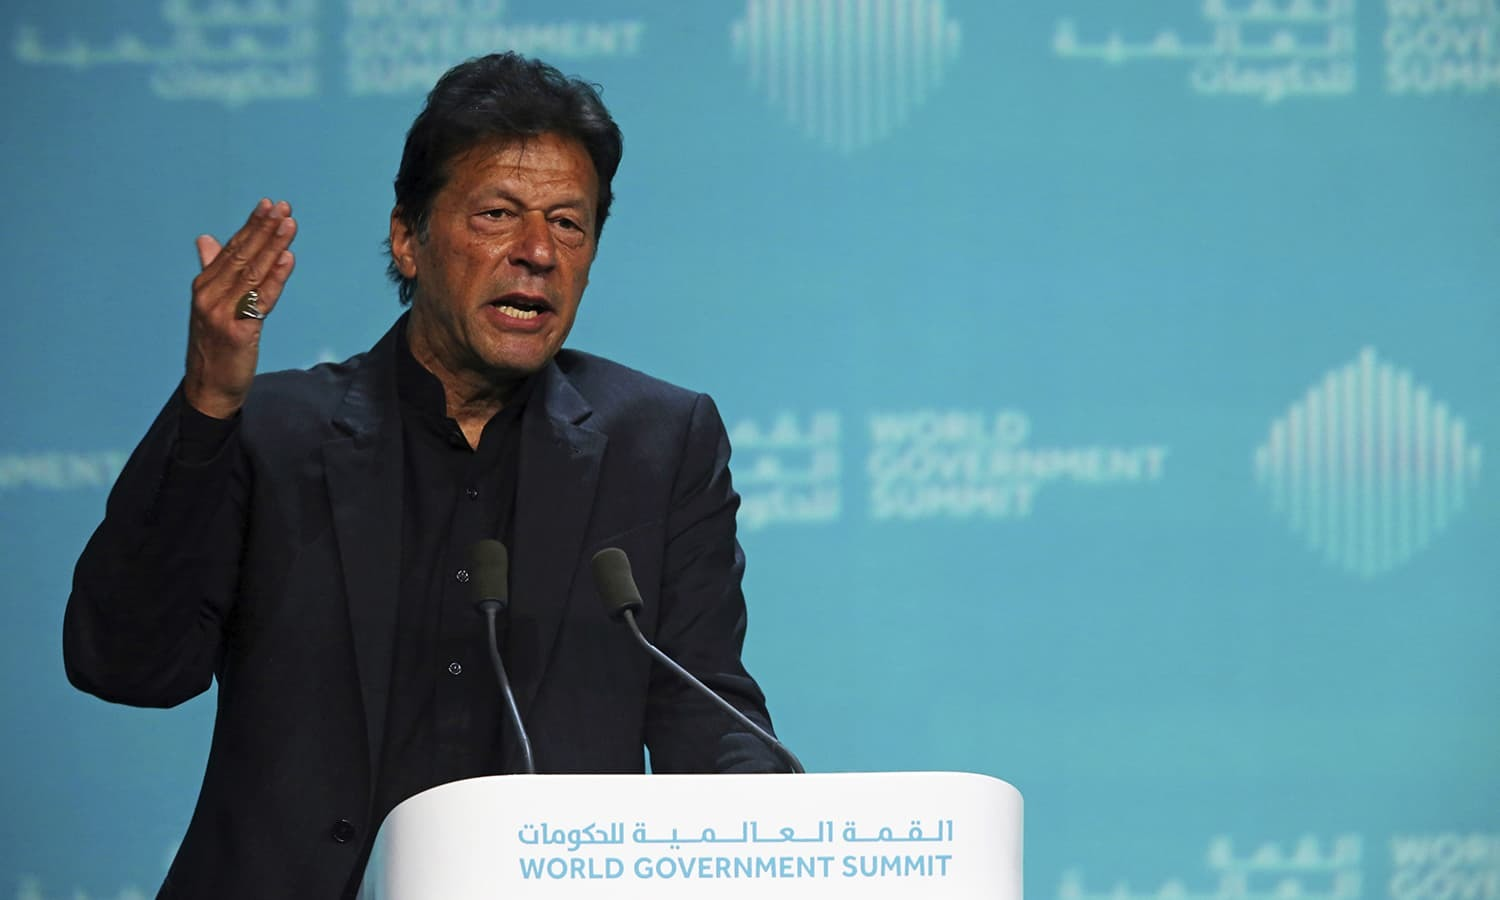 Prime Minister Imran Khan gestures while speaking during the World Government Summit in Dubai on Feb 10. — AP